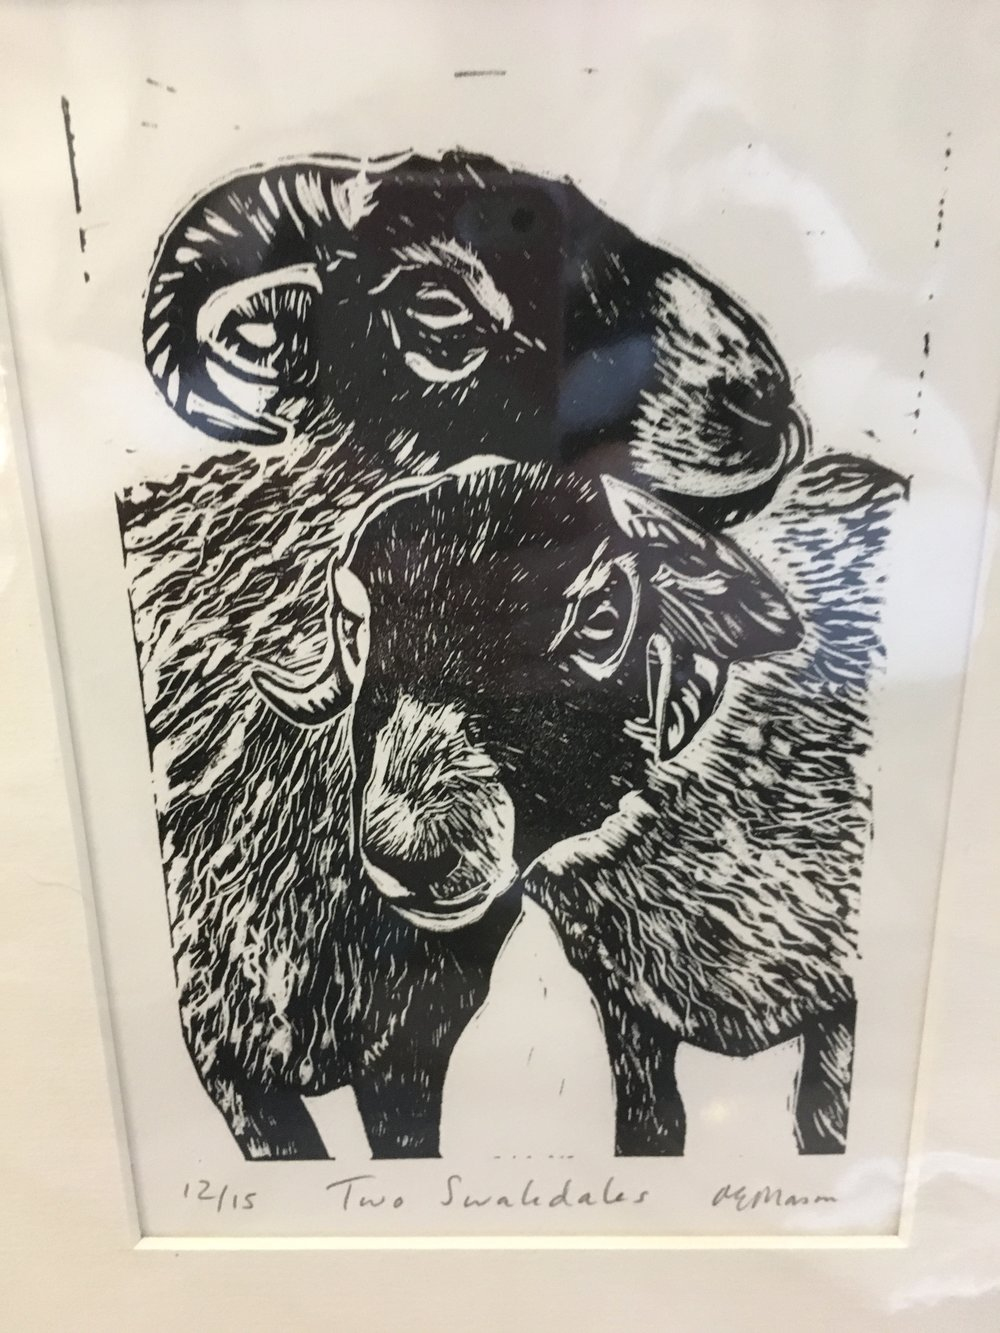 Linocut 'Two Swaledales' limited edition print 12/15 £23.00